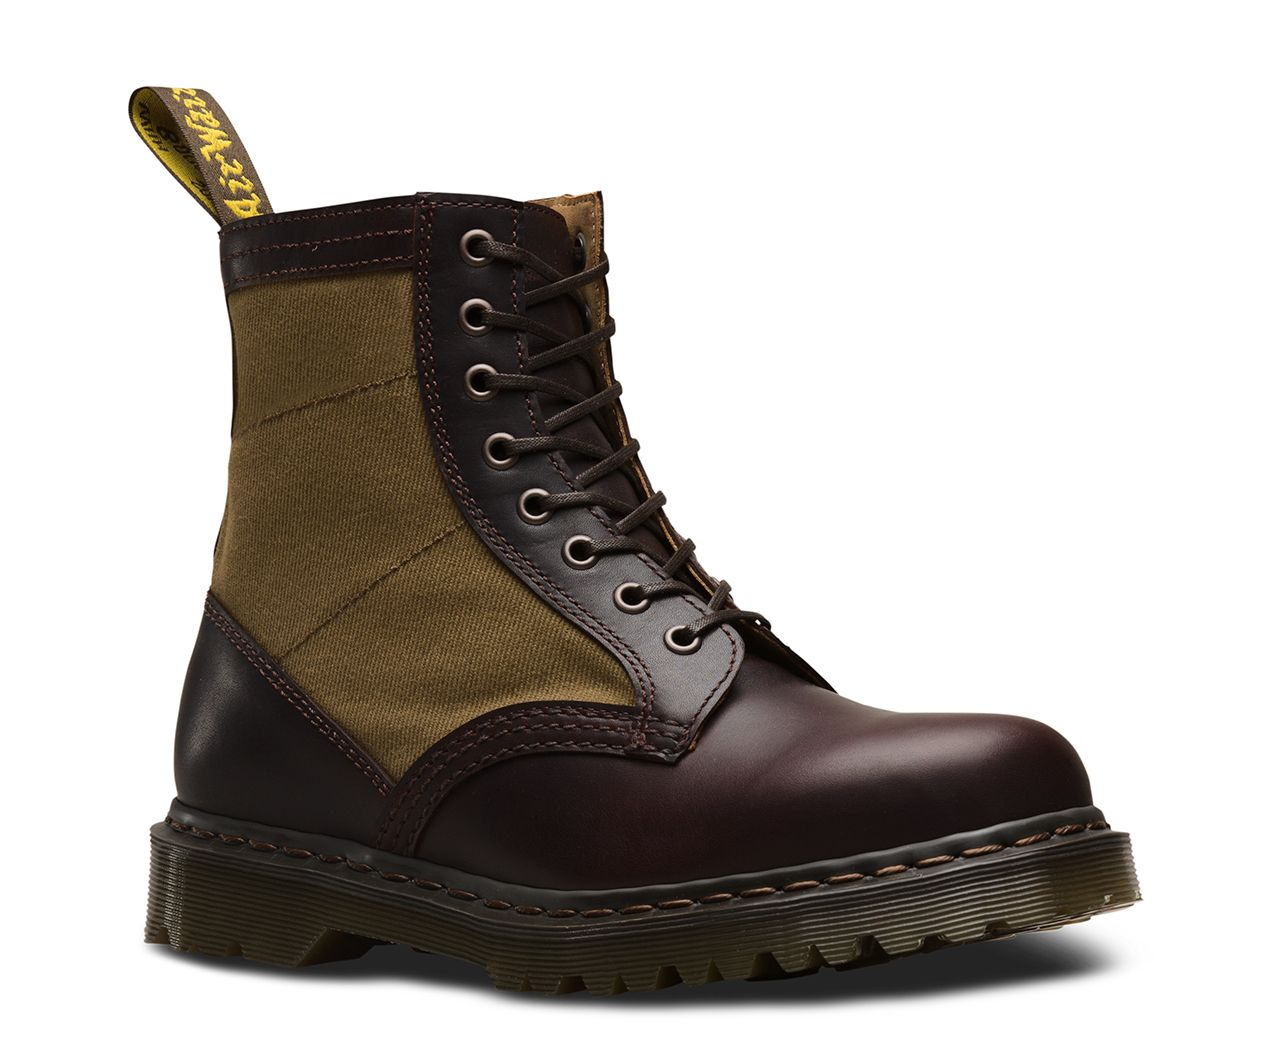 51e9a5151212 Dr martens 1460 pascal antique twill in 2019